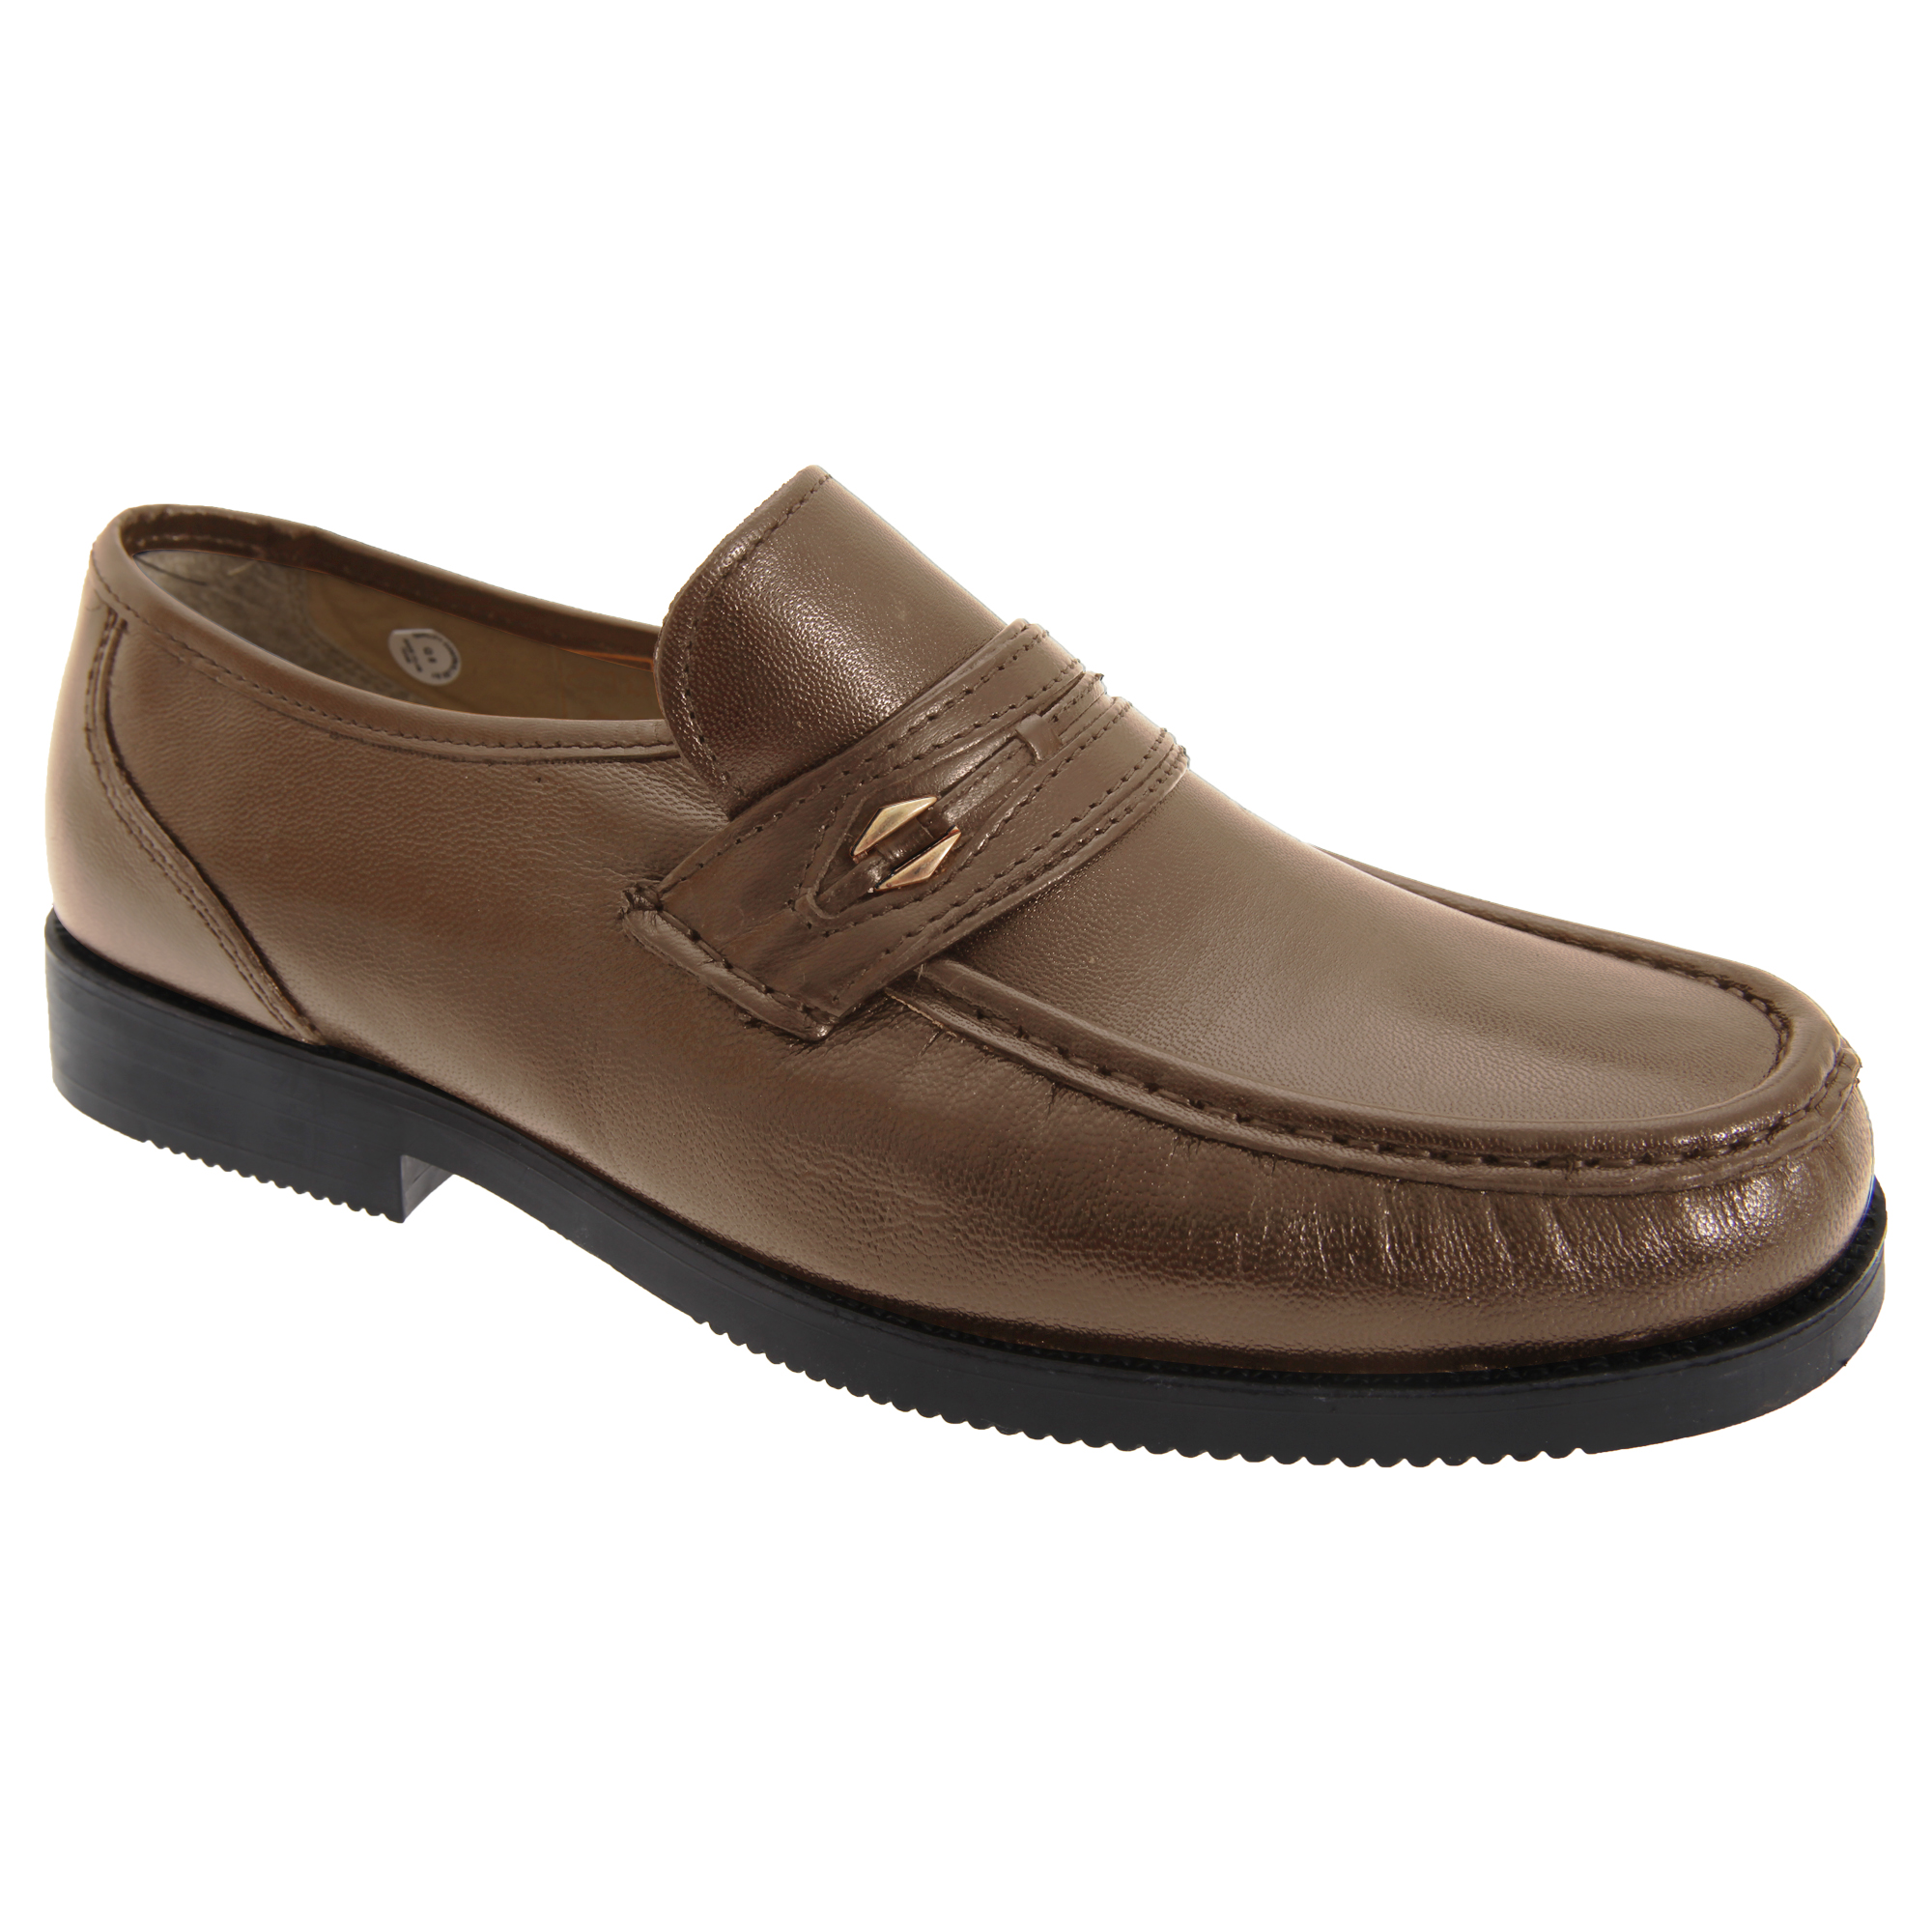 tycoons mens wide fitting saddle trim moccasin type casual